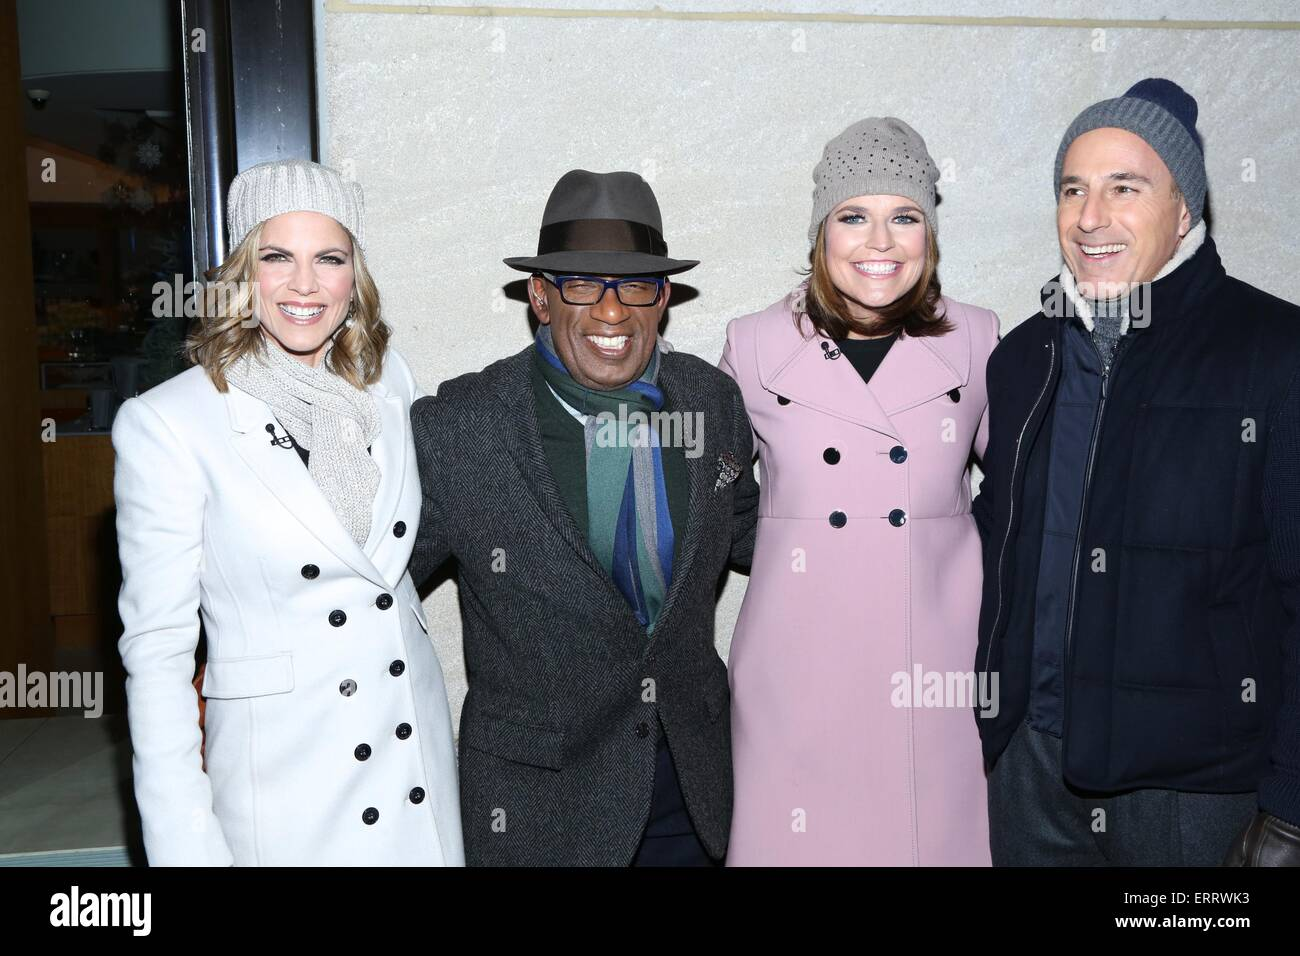 The 82nd annual Rockefeller Christmas Tree Lighting Ceremony at Rockefeller Center Featuring Natalie MoralesAl RokerSavannah Guthrieand Matt Lauer ...  sc 1 st  Alamy & The 82nd annual Rockefeller Christmas Tree Lighting Ceremony at ...